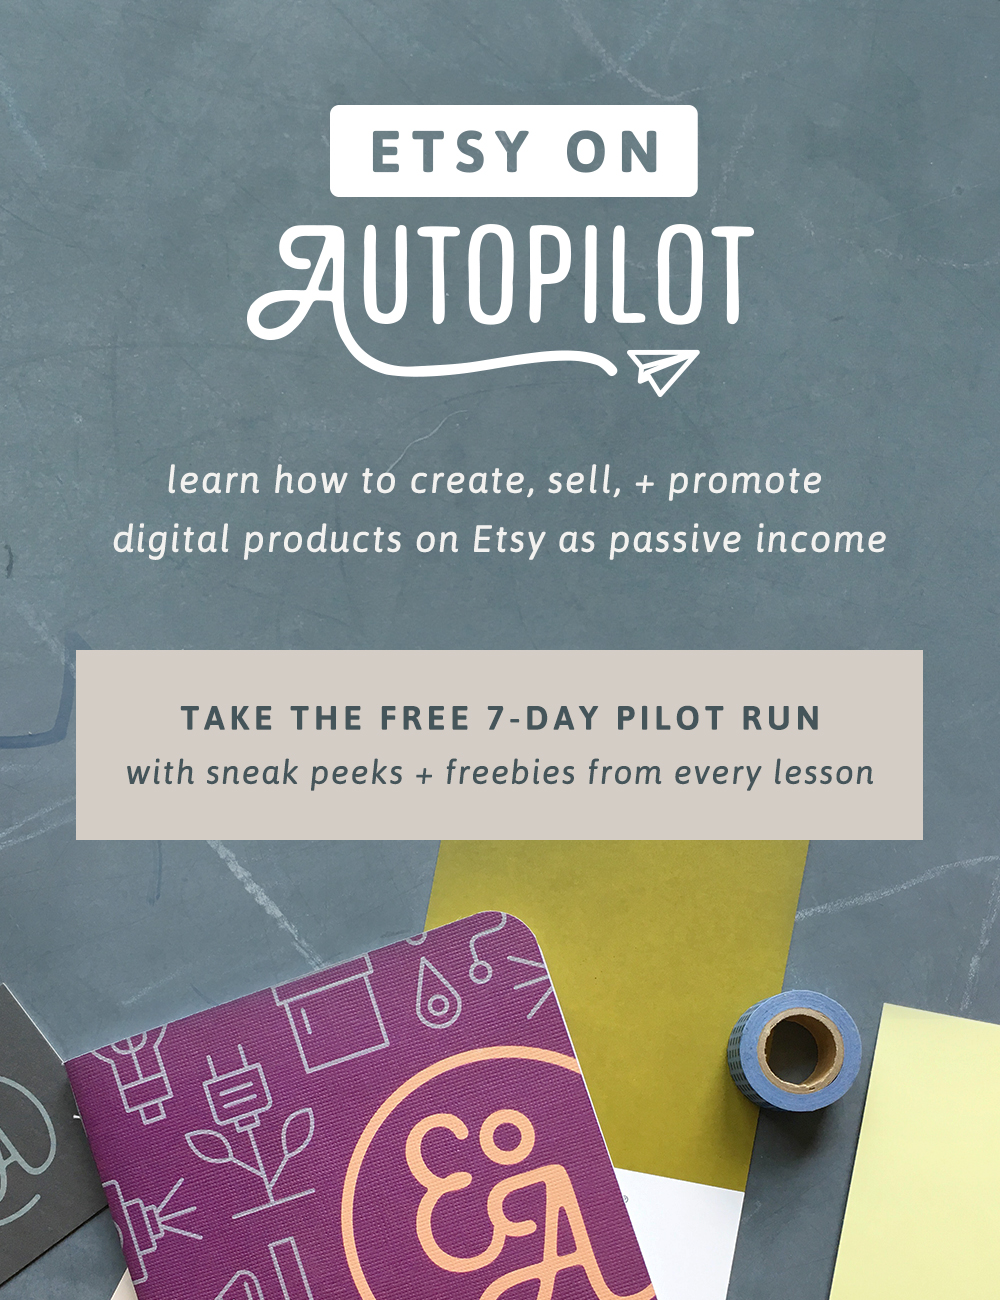 Etsy on Autopilot – learn to create, sell, and promote digital products on Etsy as passive income